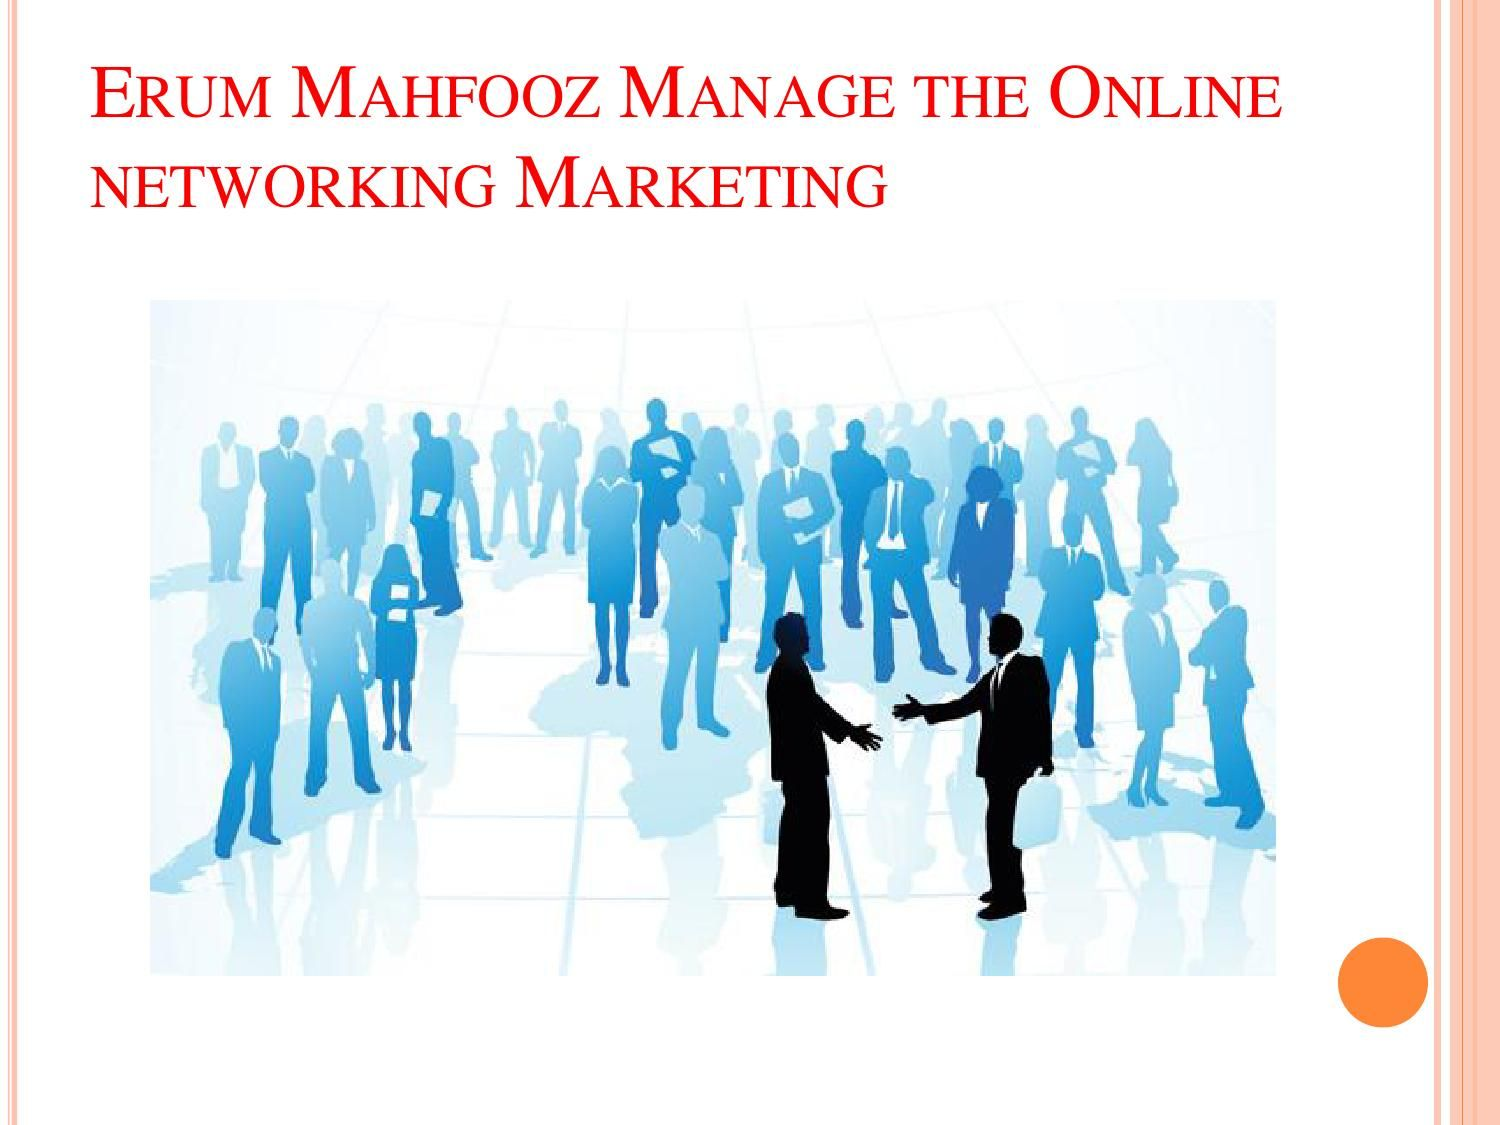 Erum Mahfooz Manage The Online Networking Marketing Recruitment Agencies Professional Networking Staffing Company